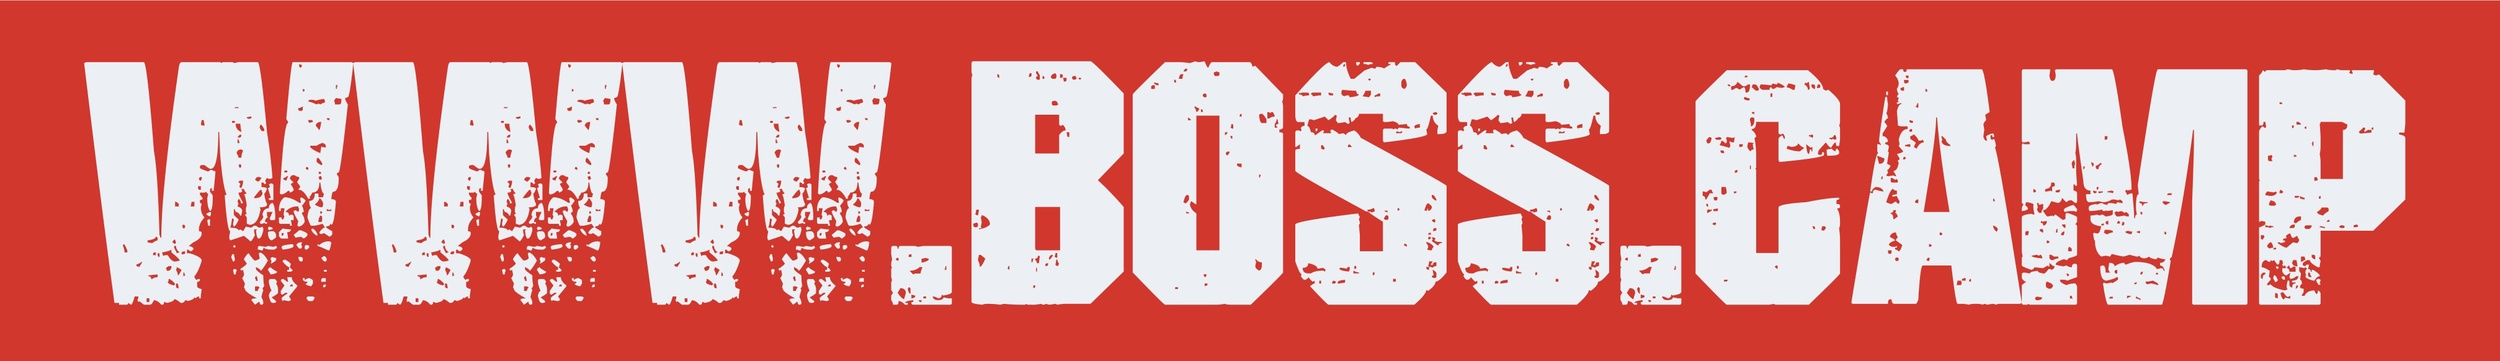 Find out proven techniques for employee selection, motivation and retention at www.boss.camp Jpeg